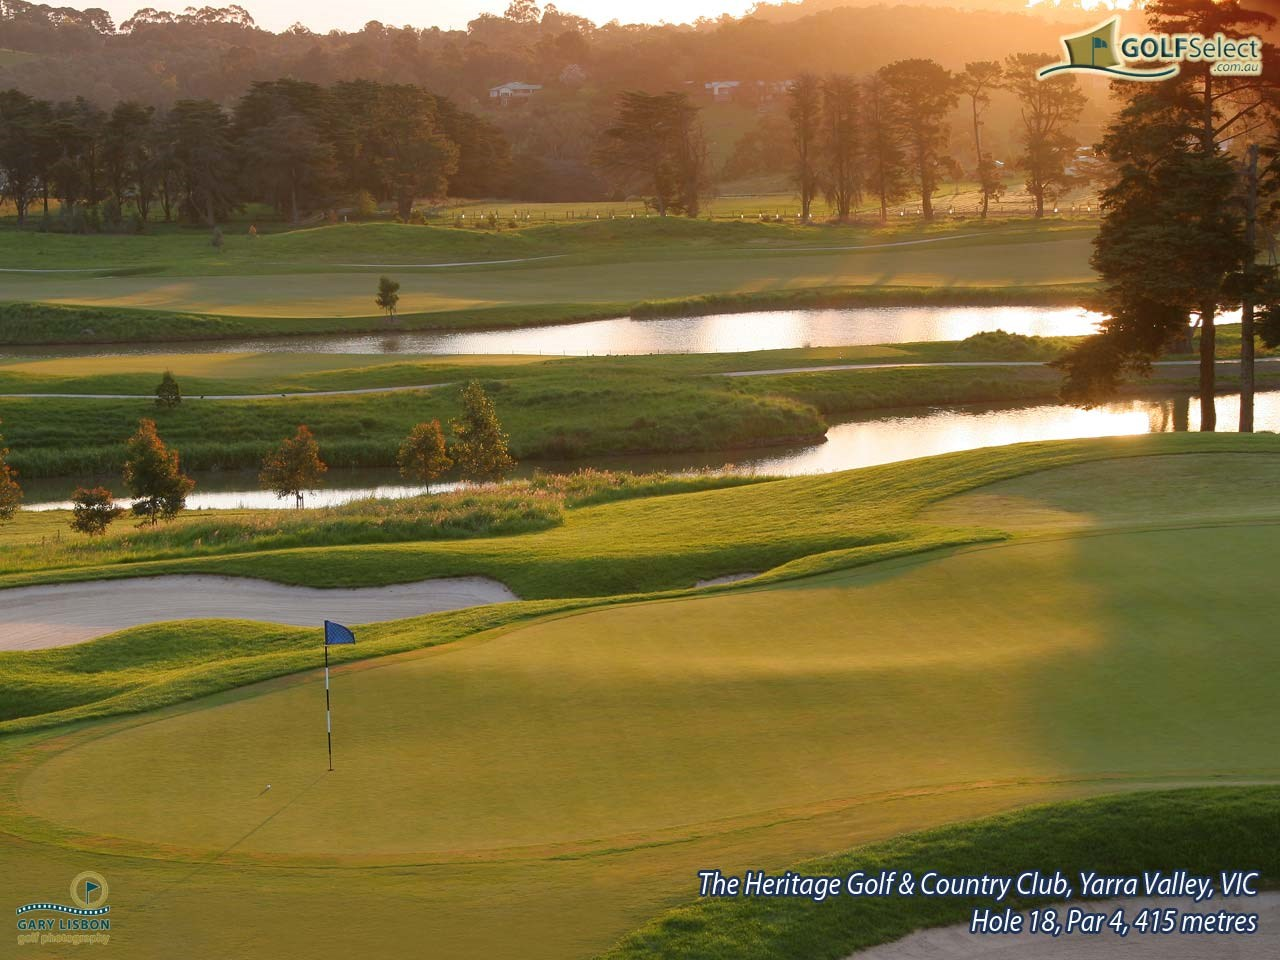 The Heritage Golf and Country Club (St.John Course) Hole 18, Par 4, 415 metres